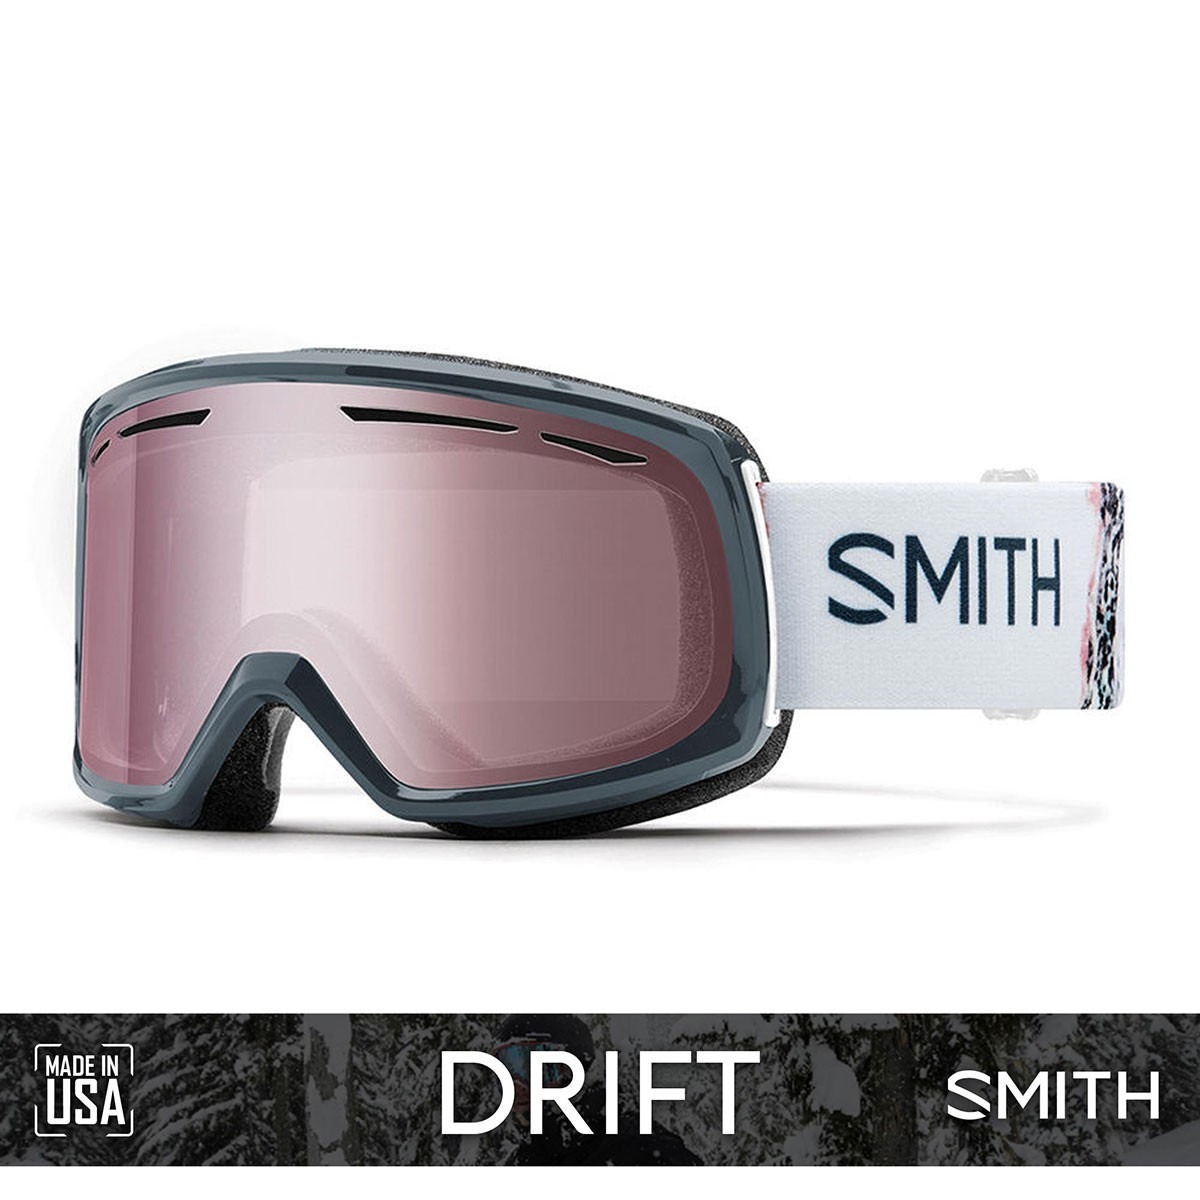 SMITH DRIFT Thunder Composite | S2 IGNITOR Mirror - Изображение - AQUAMATRIX